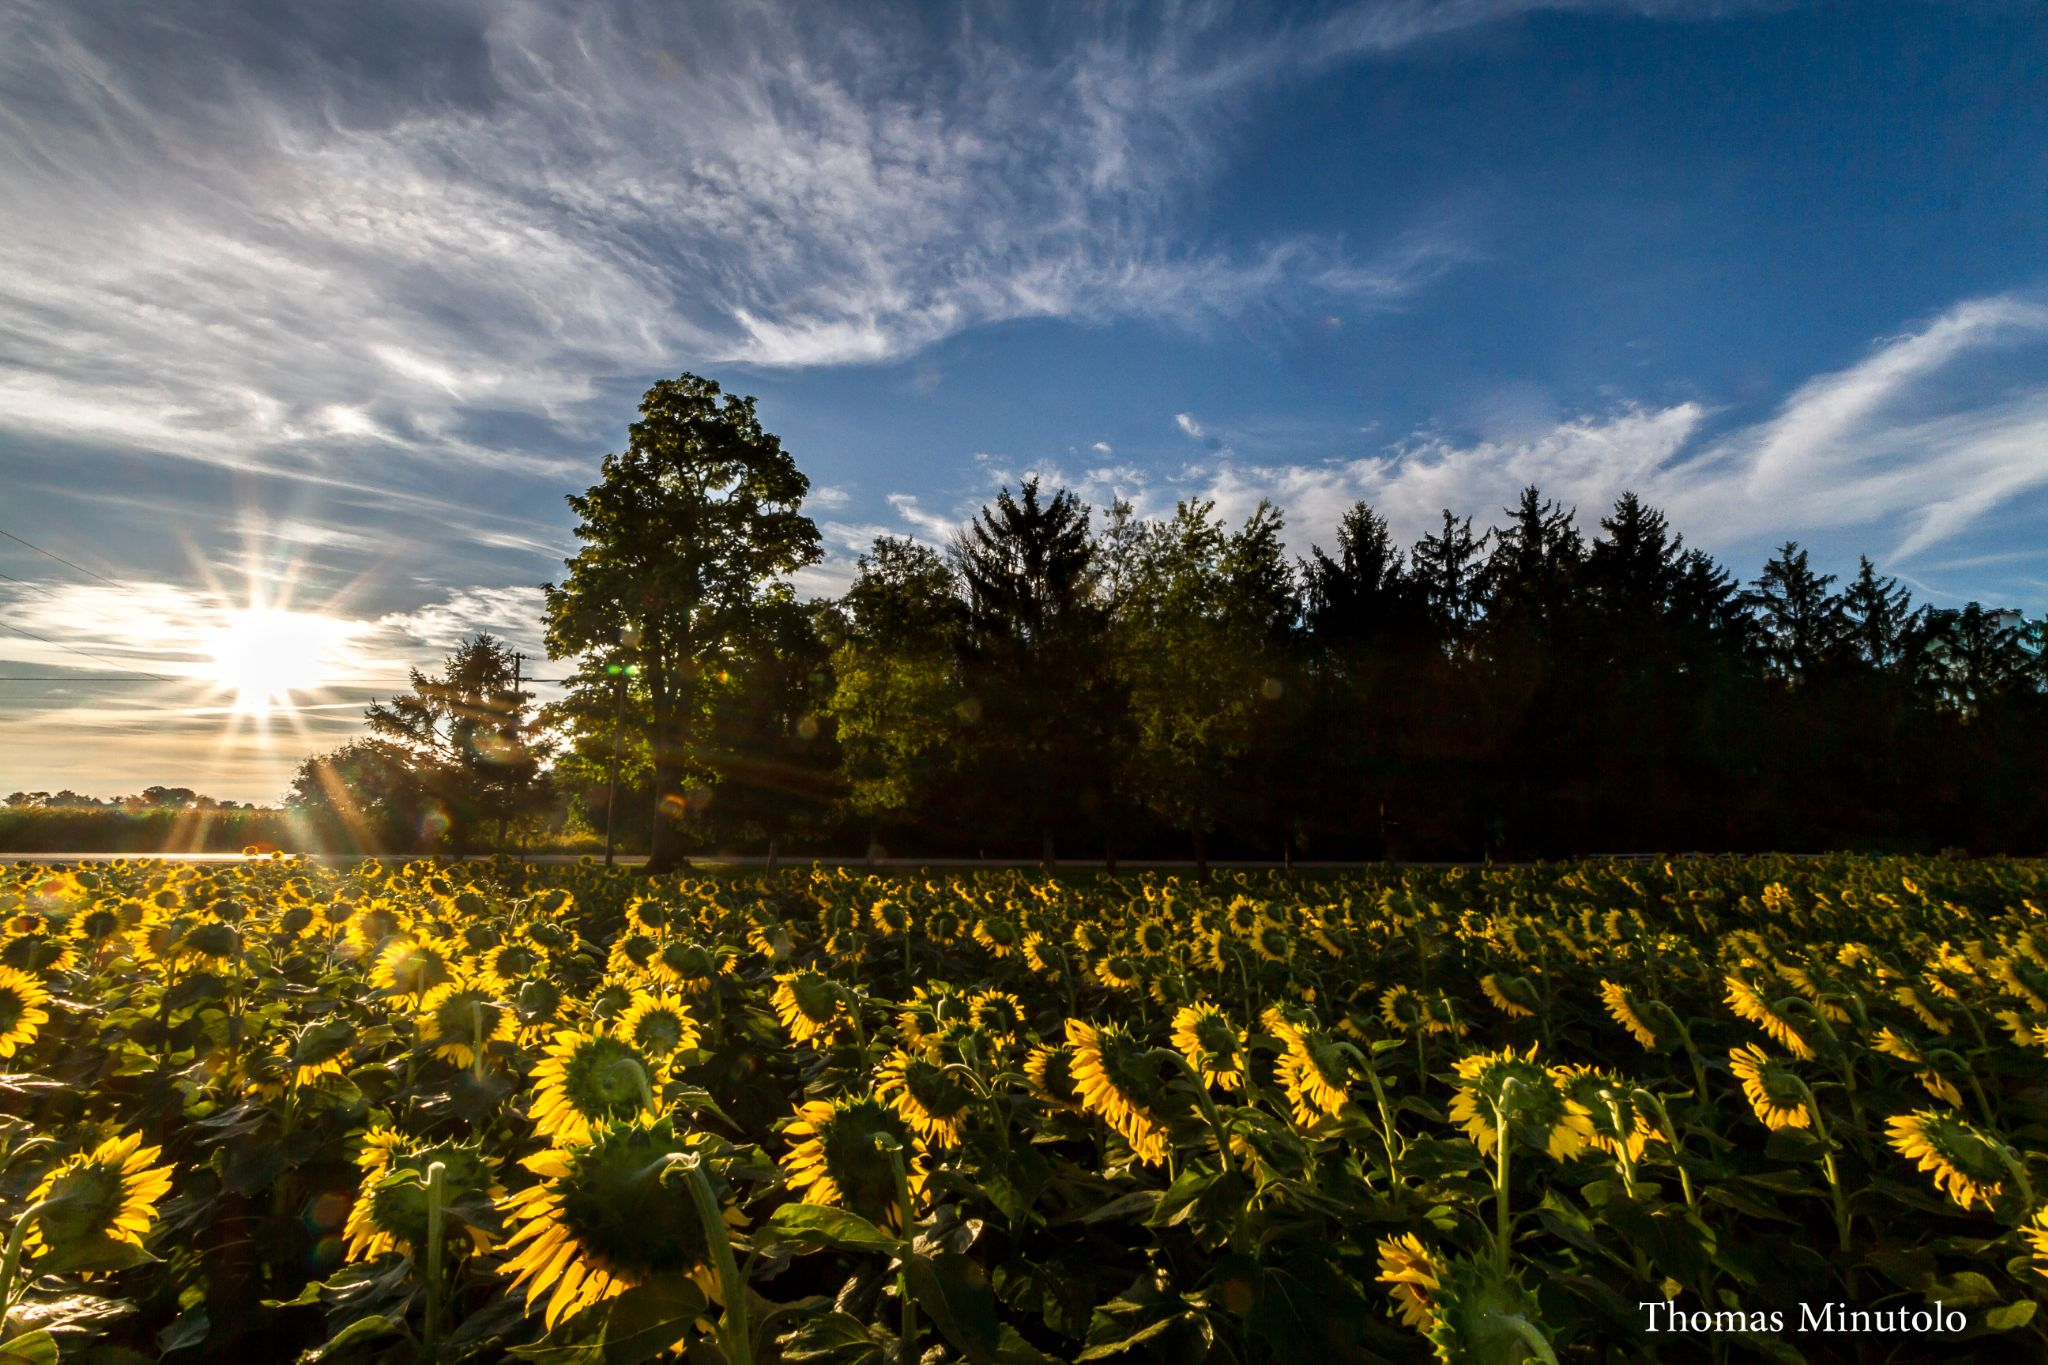 A Field Of Sunflowers Greeting The Morning Light Near Yellow Springs Ohio 9-14-2014 by tomminutolo